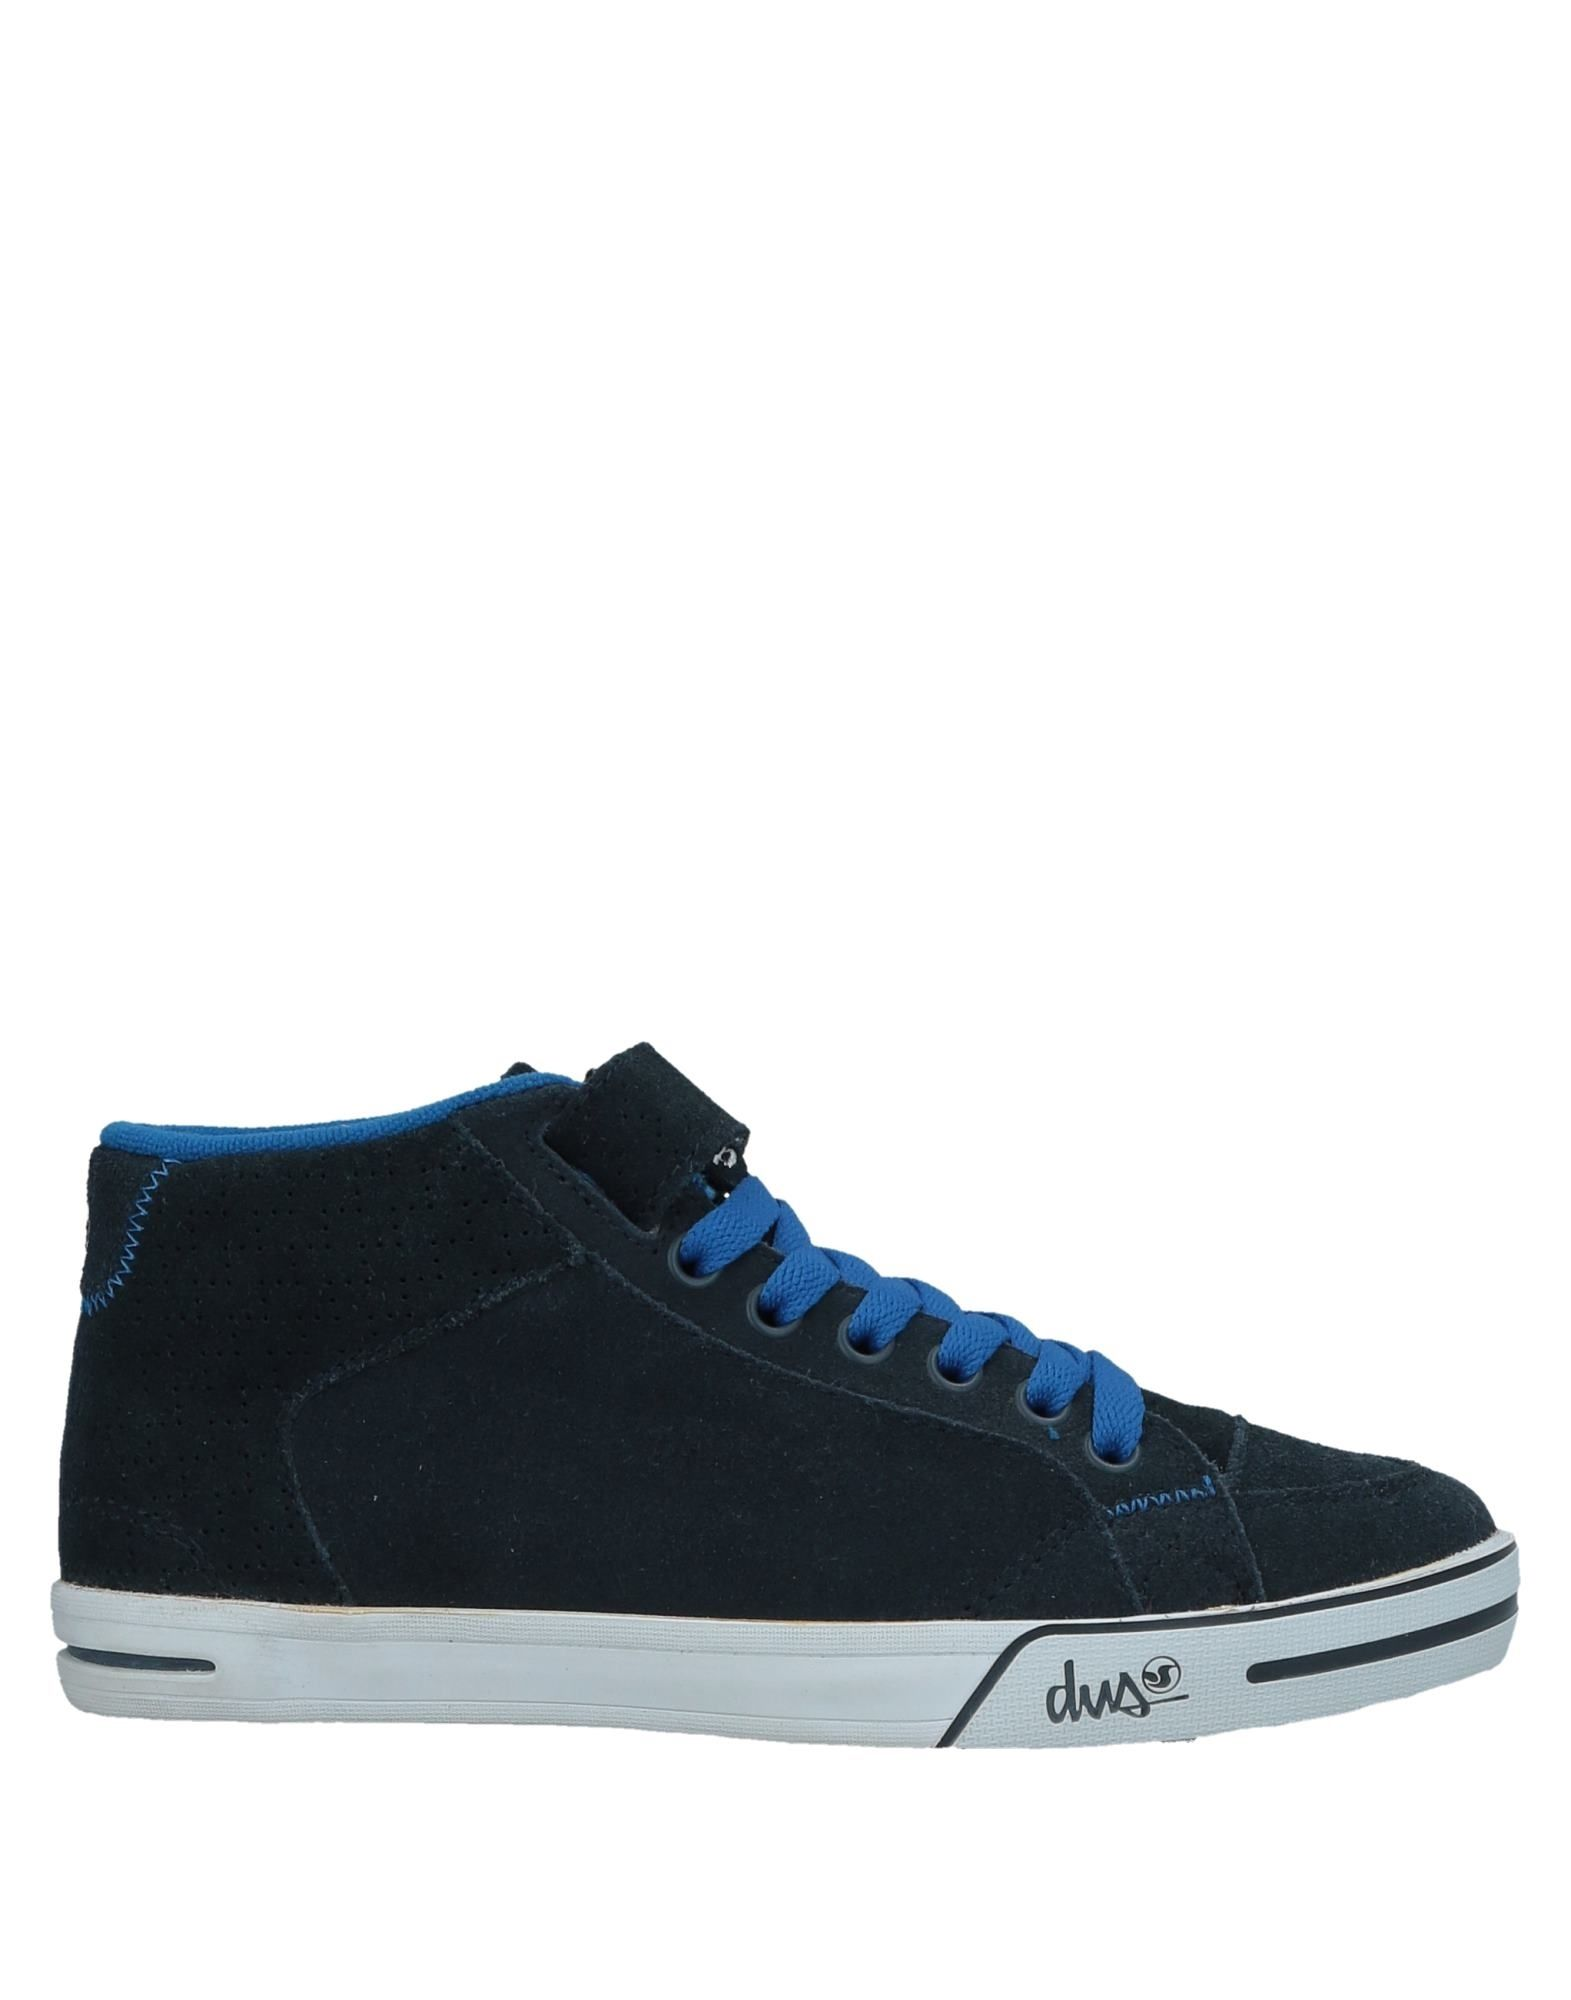 Sneakers Dvs Shoe Company Donna Donna Donna - 11532537TP d3ae5e